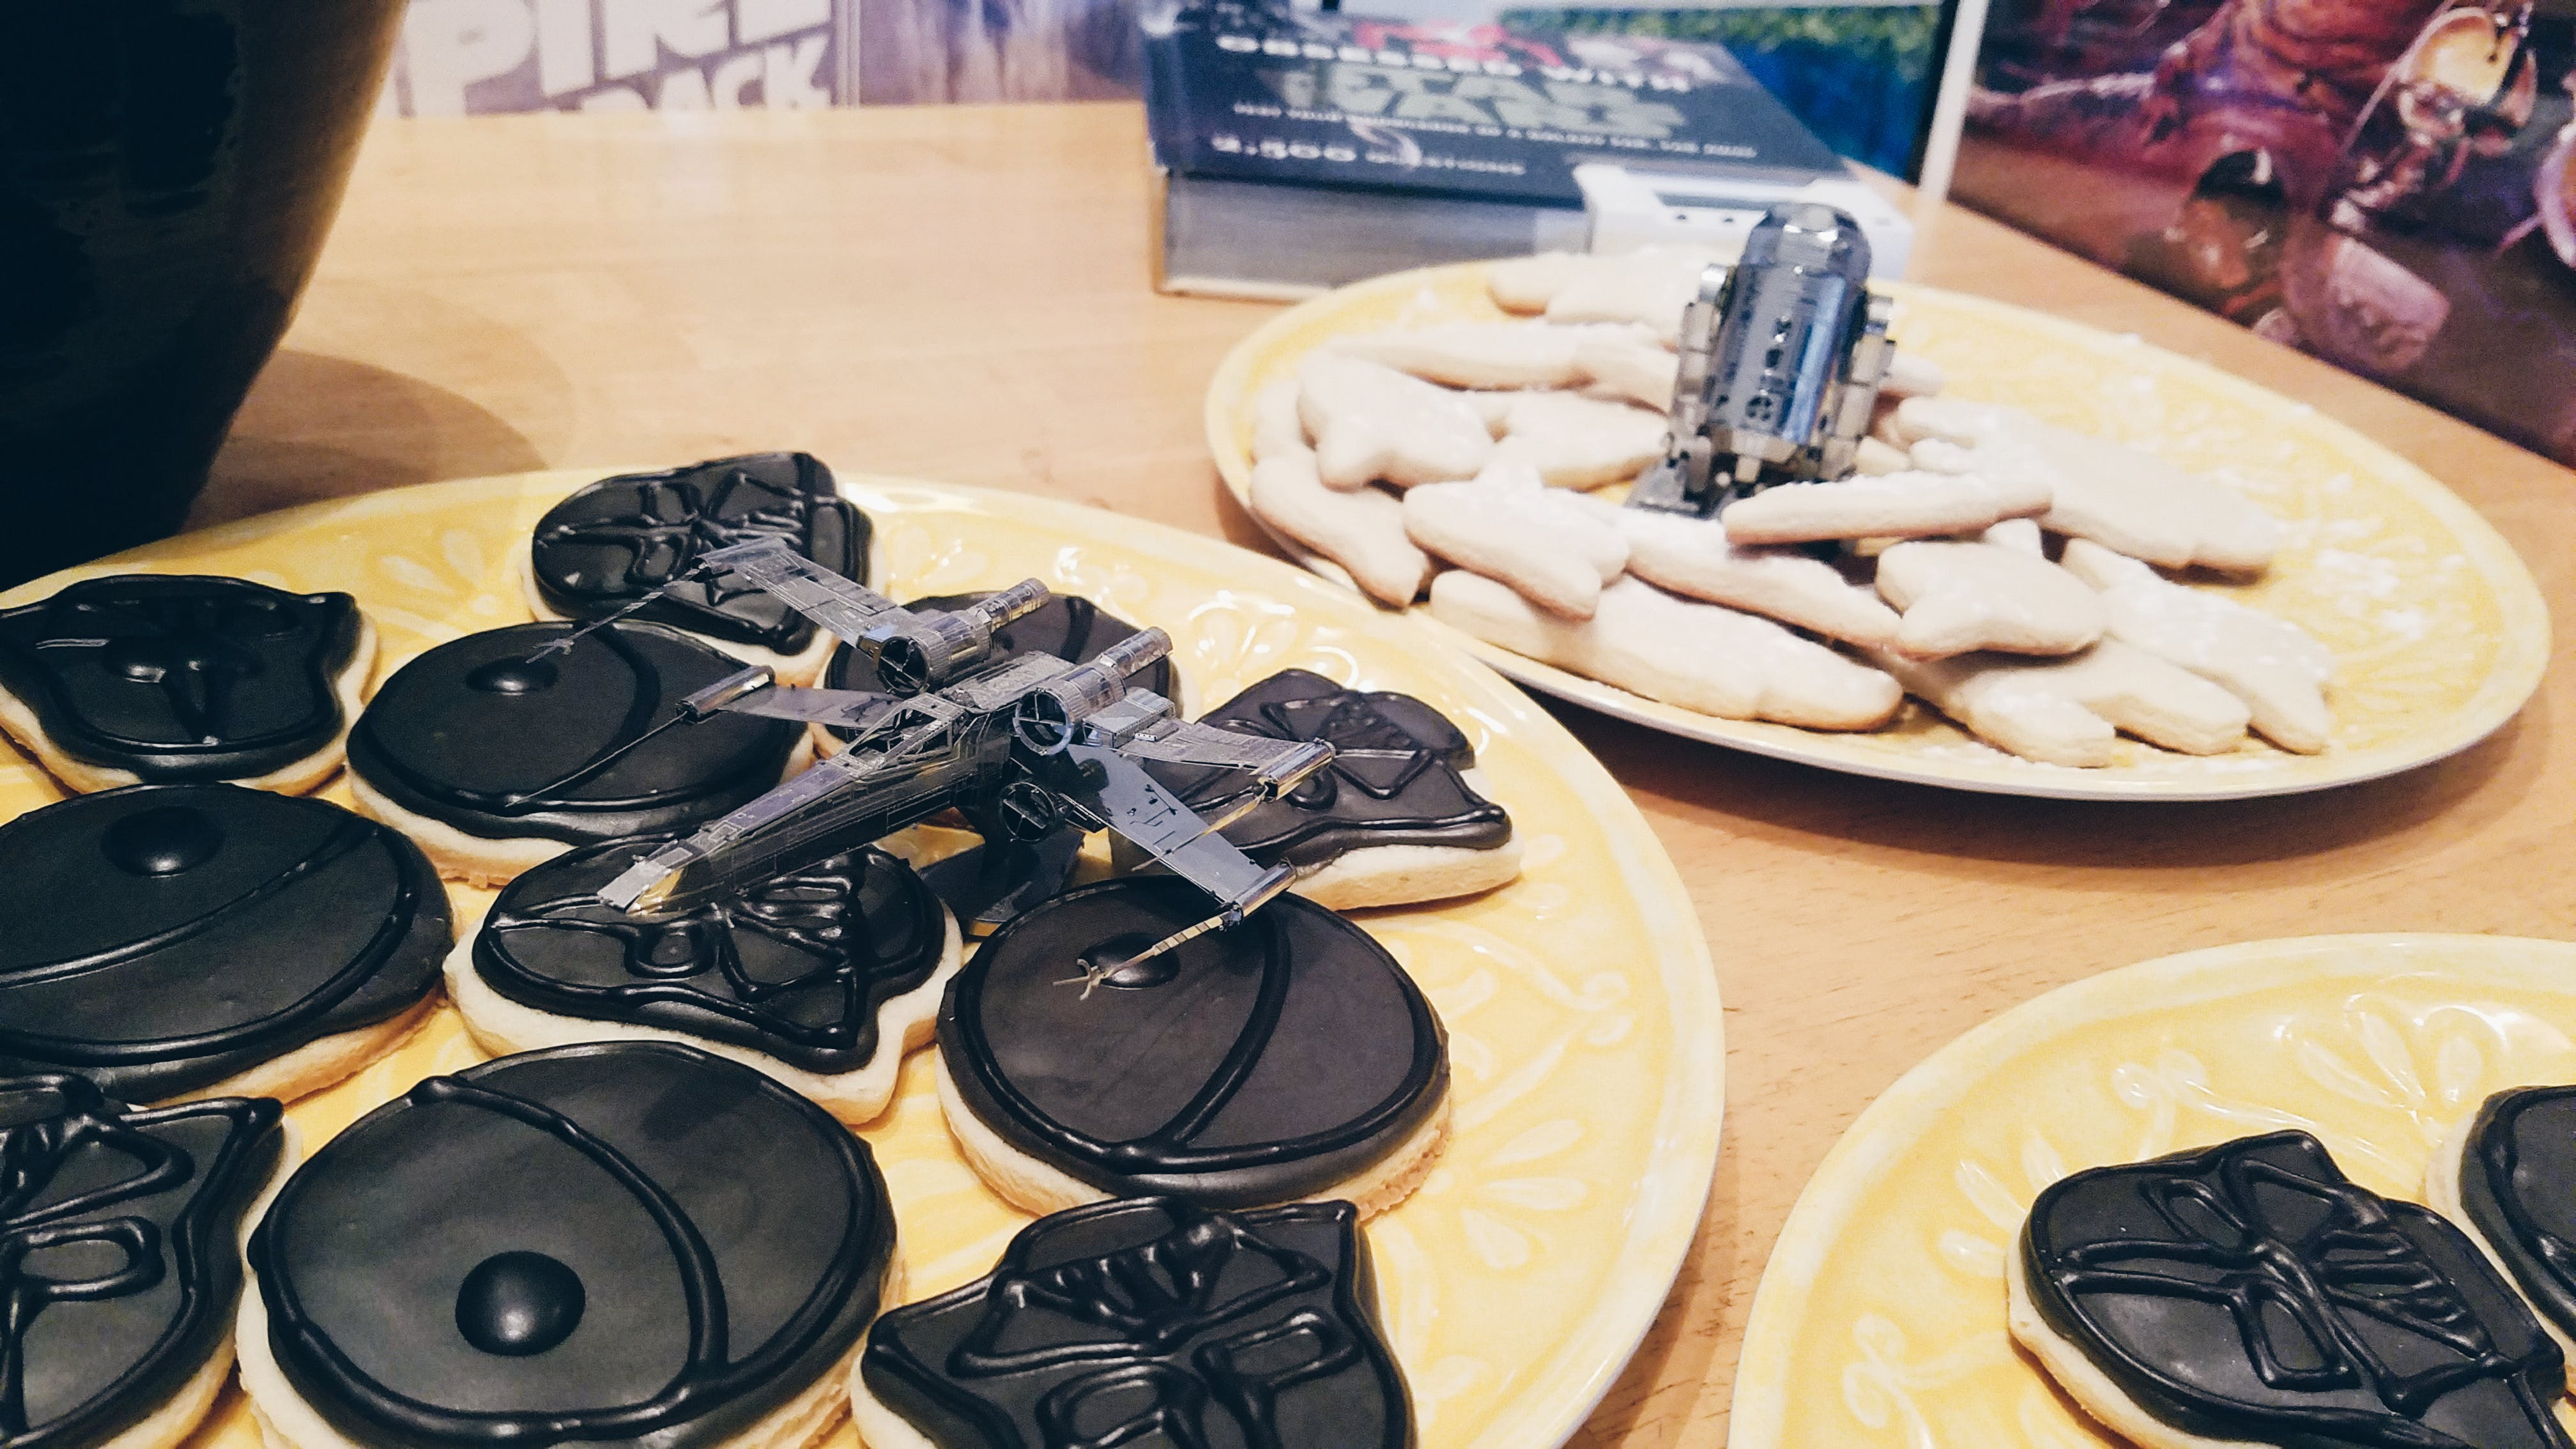 Metal model of an X-Wing starfighter next to a plate of Darth Vader cookies